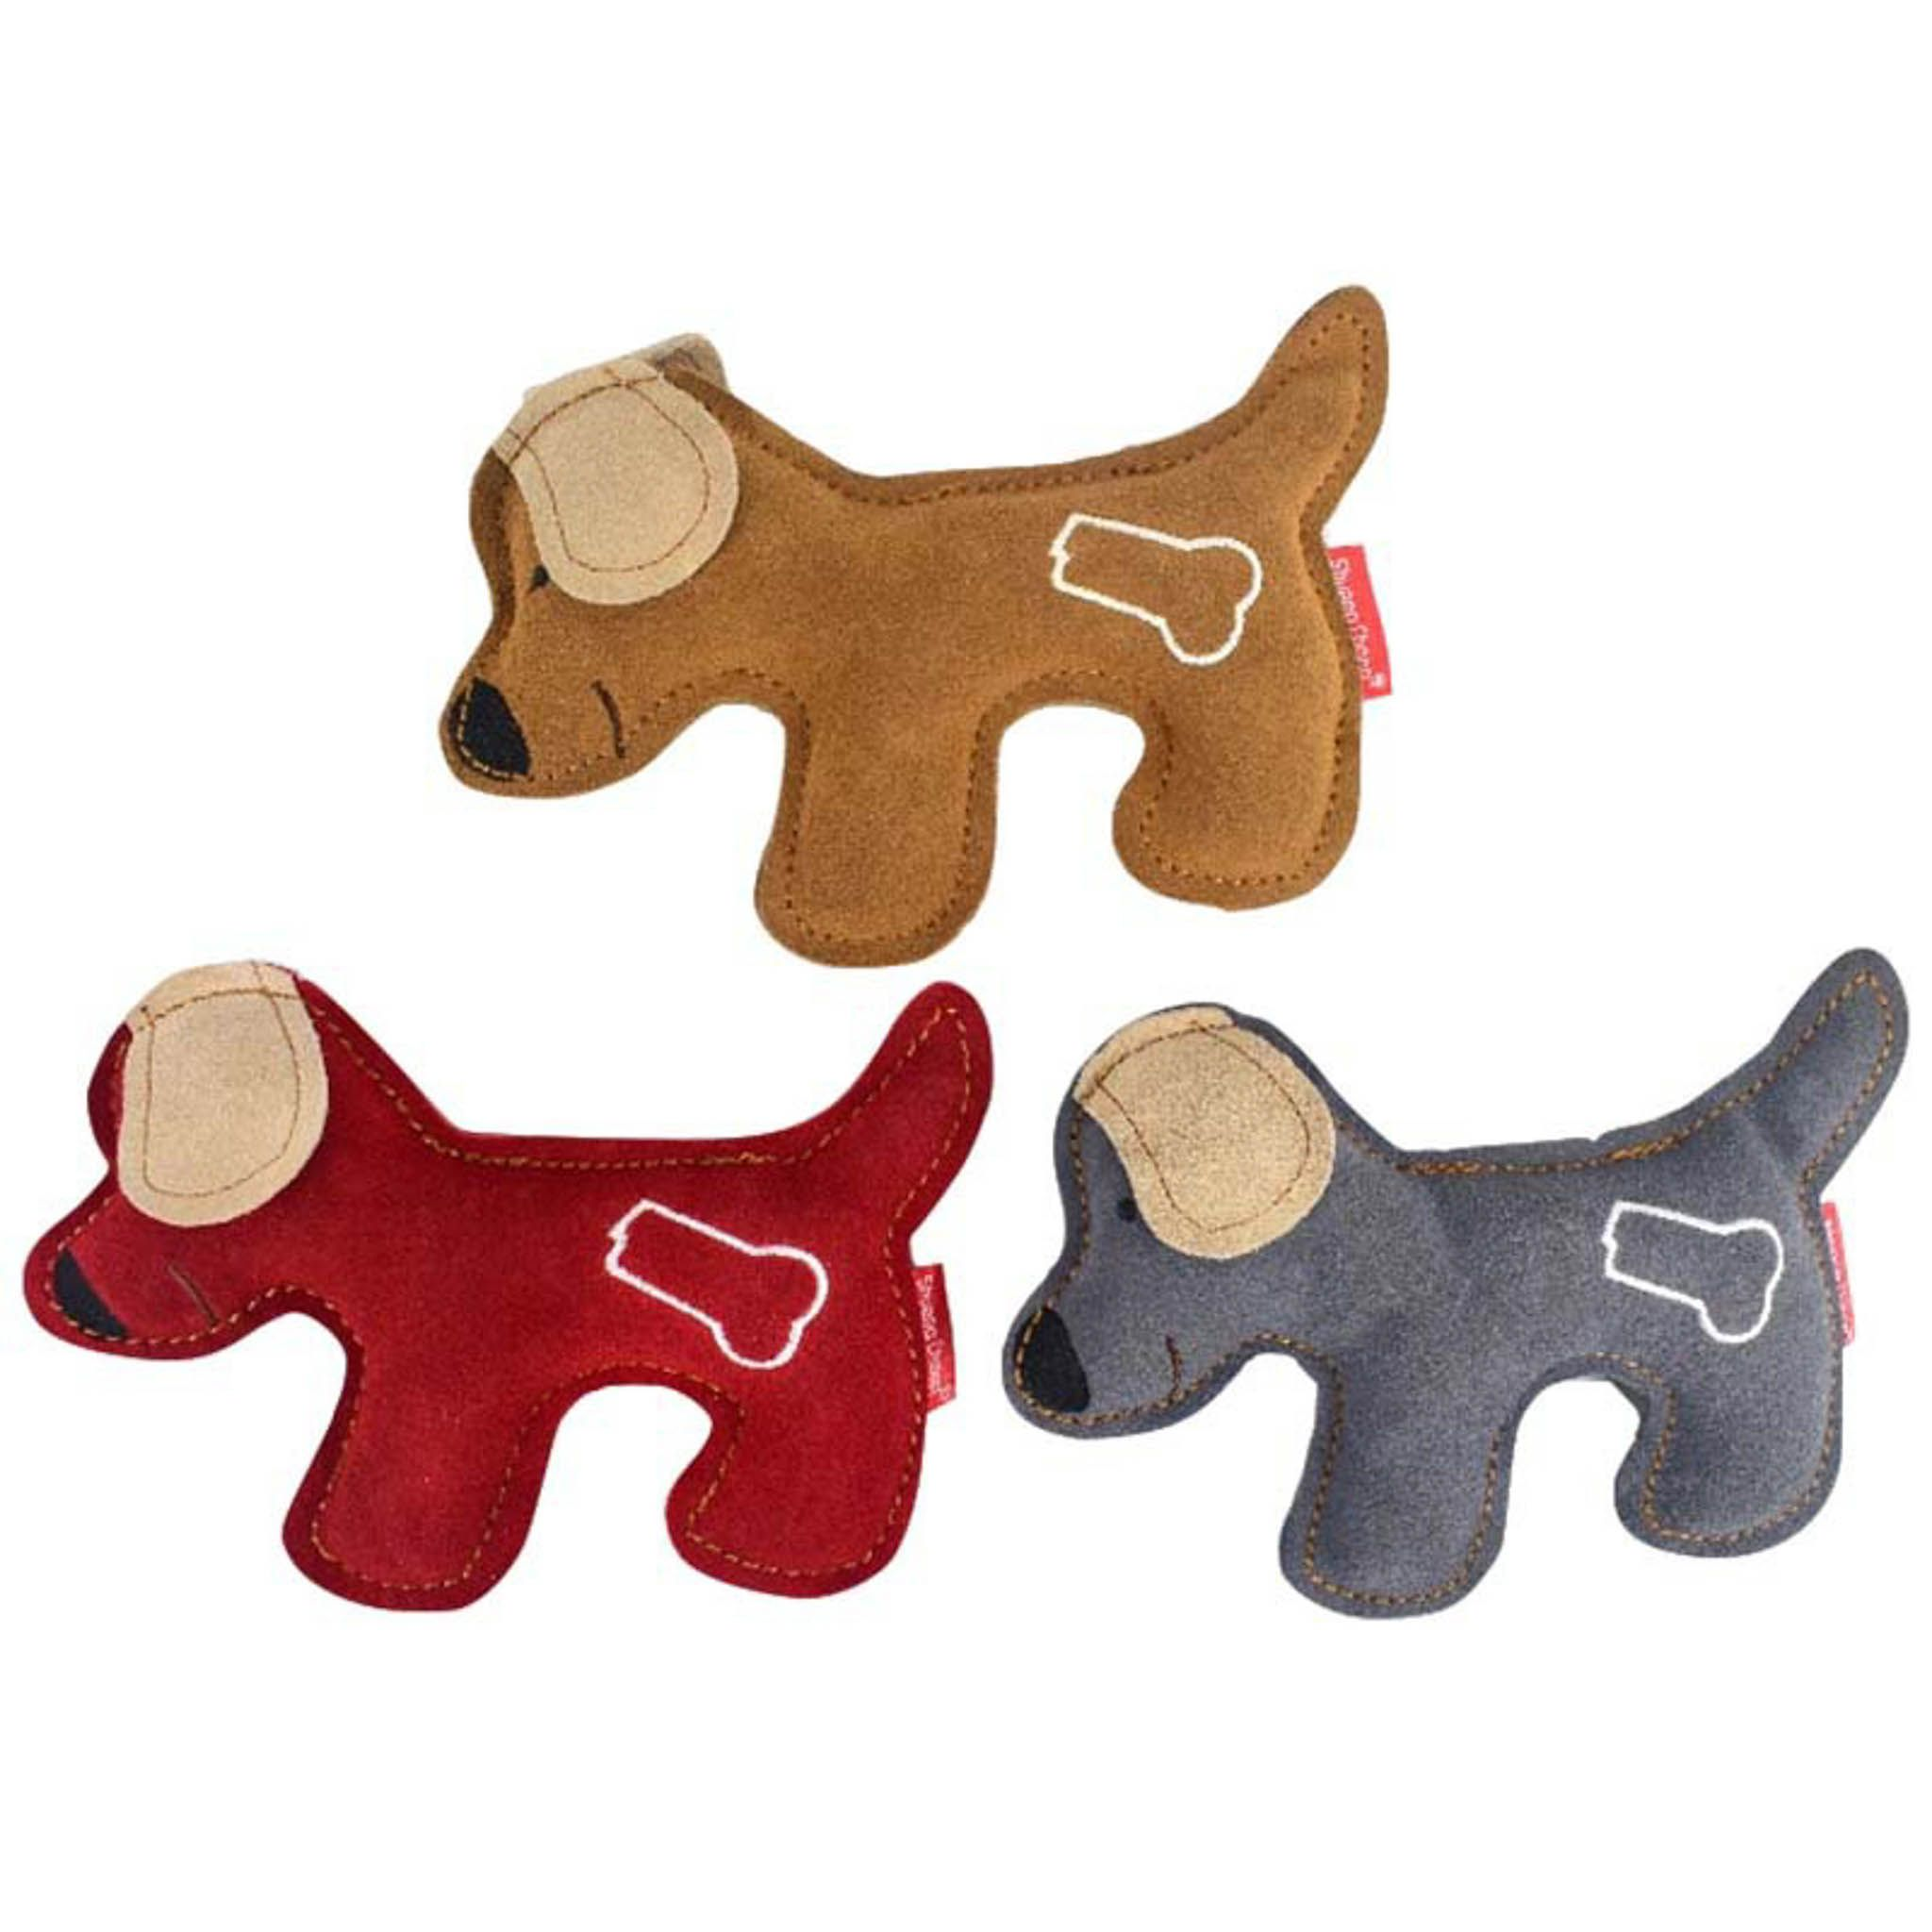 Our Range Of Leather Chew Toys Are Made Of High Quality Material